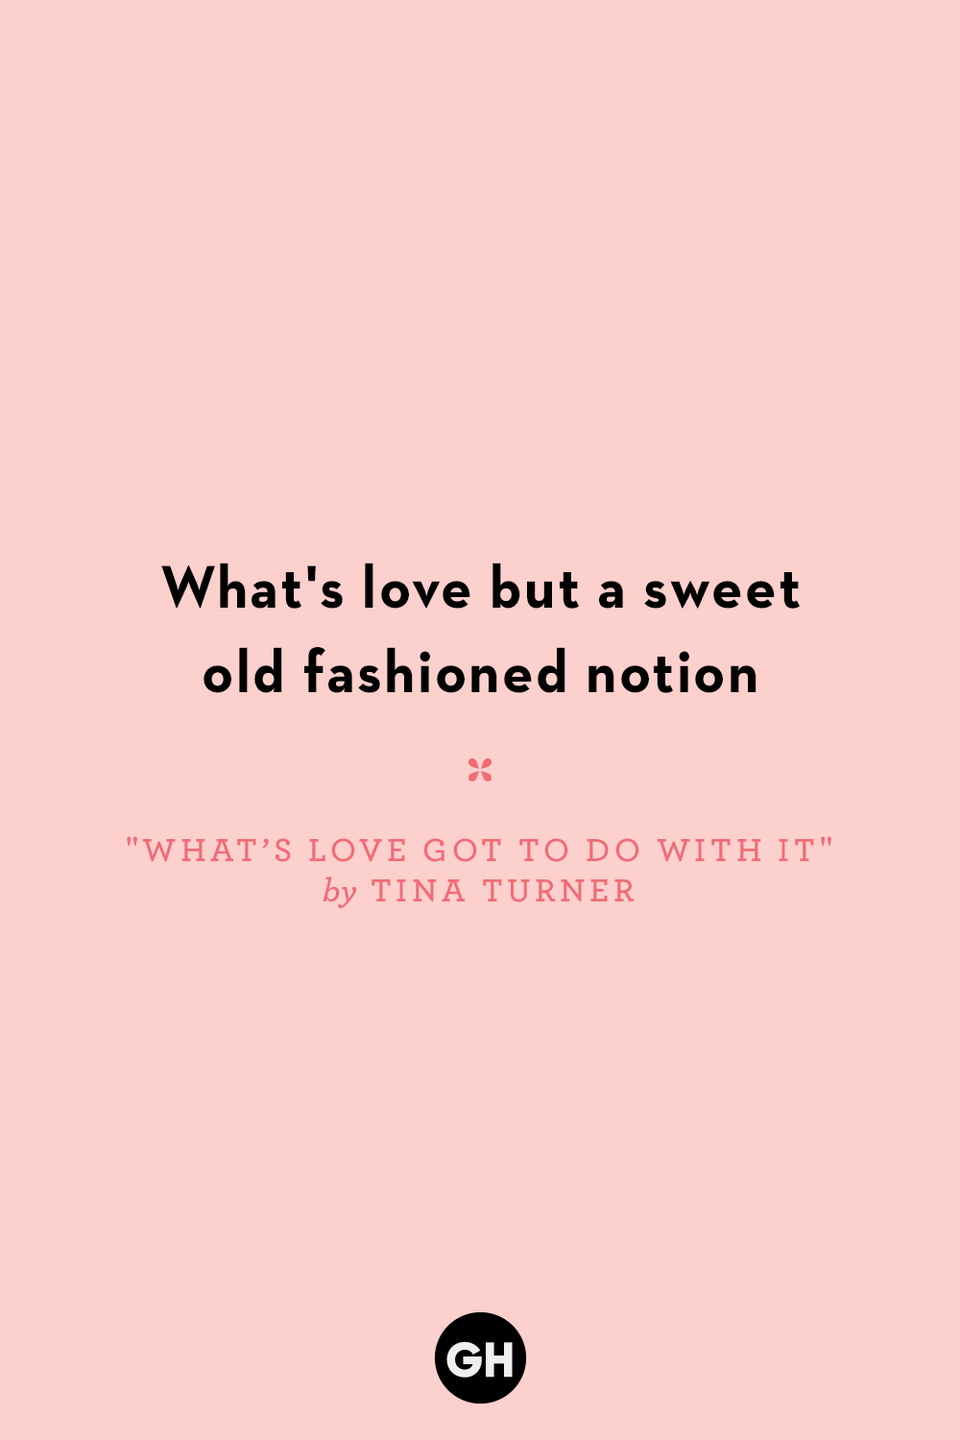 "<p>What's love but a sweet old fashioned notion</p><p><strong>RELATED: <a href=""https://www.goodhousekeeping.com/life/entertainment/g32368739/true-story-behind-famous-songs/"" rel=""nofollow noopener"" target=""_blank"" data-ylk=""slk:The Fascinating True Stories Behind Famous Songs"" class=""link rapid-noclick-resp"">The Fascinating True Stories Behind Famous Songs</a></strong></p>"